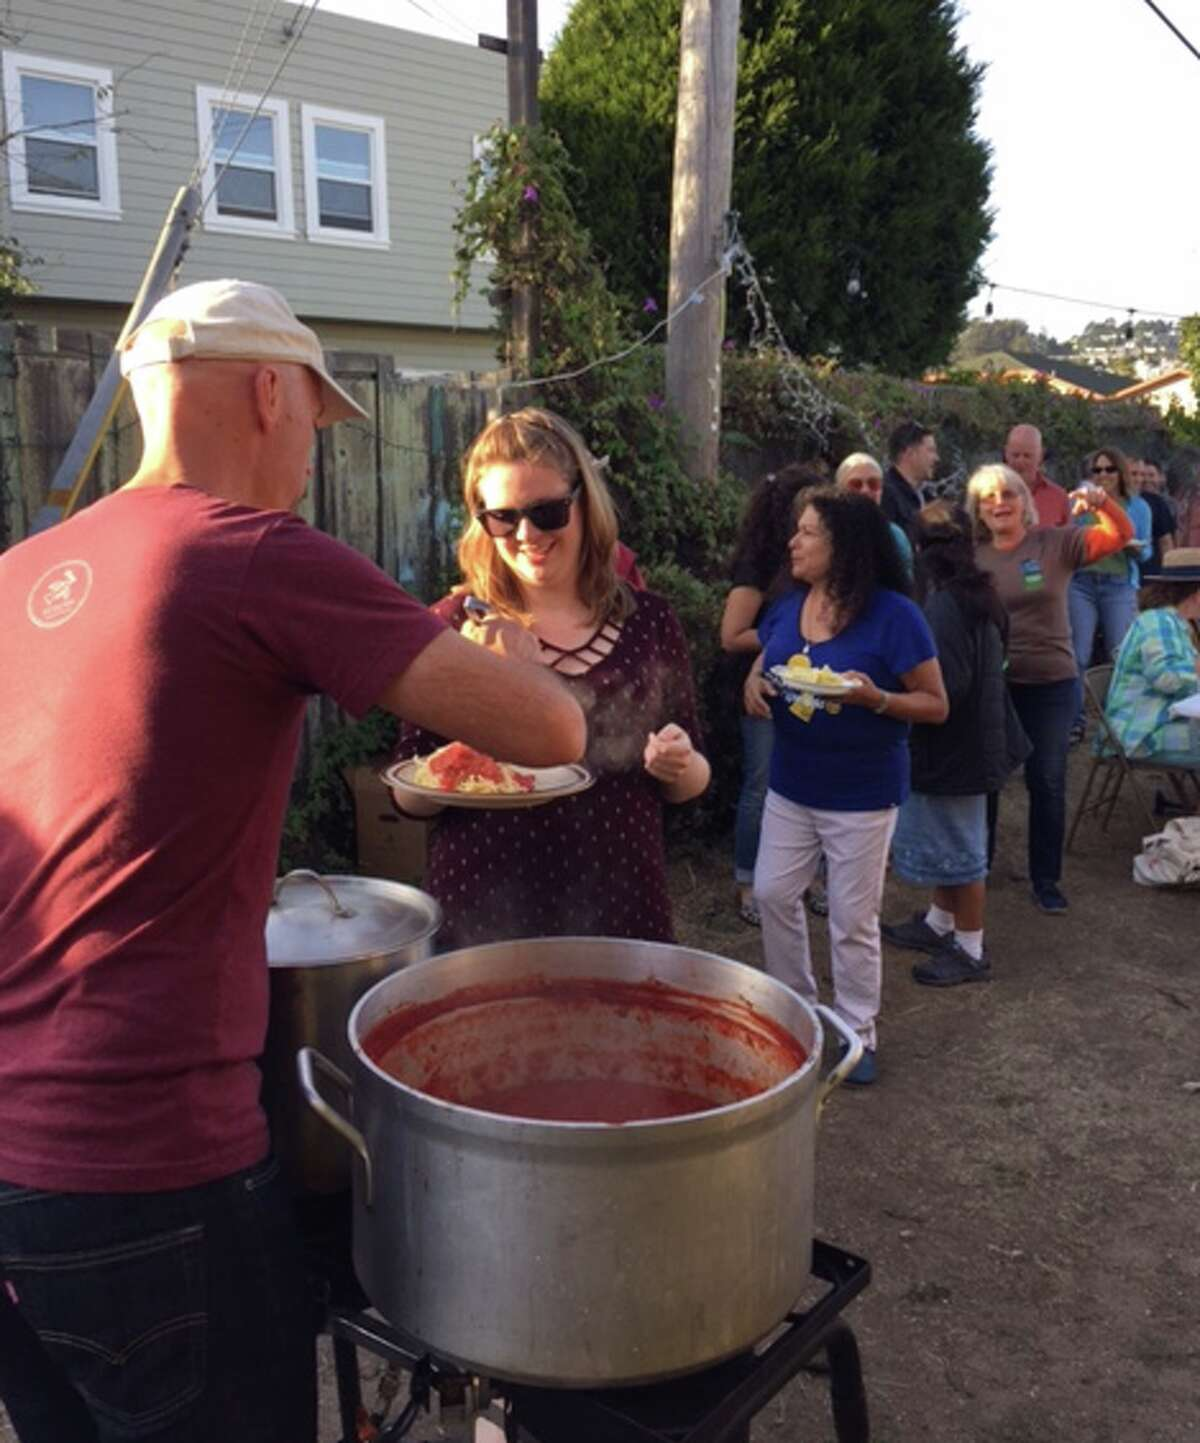 John Hogeland dishes up his meatless marinara sauce at the annual Mission Terrace Alley Party.